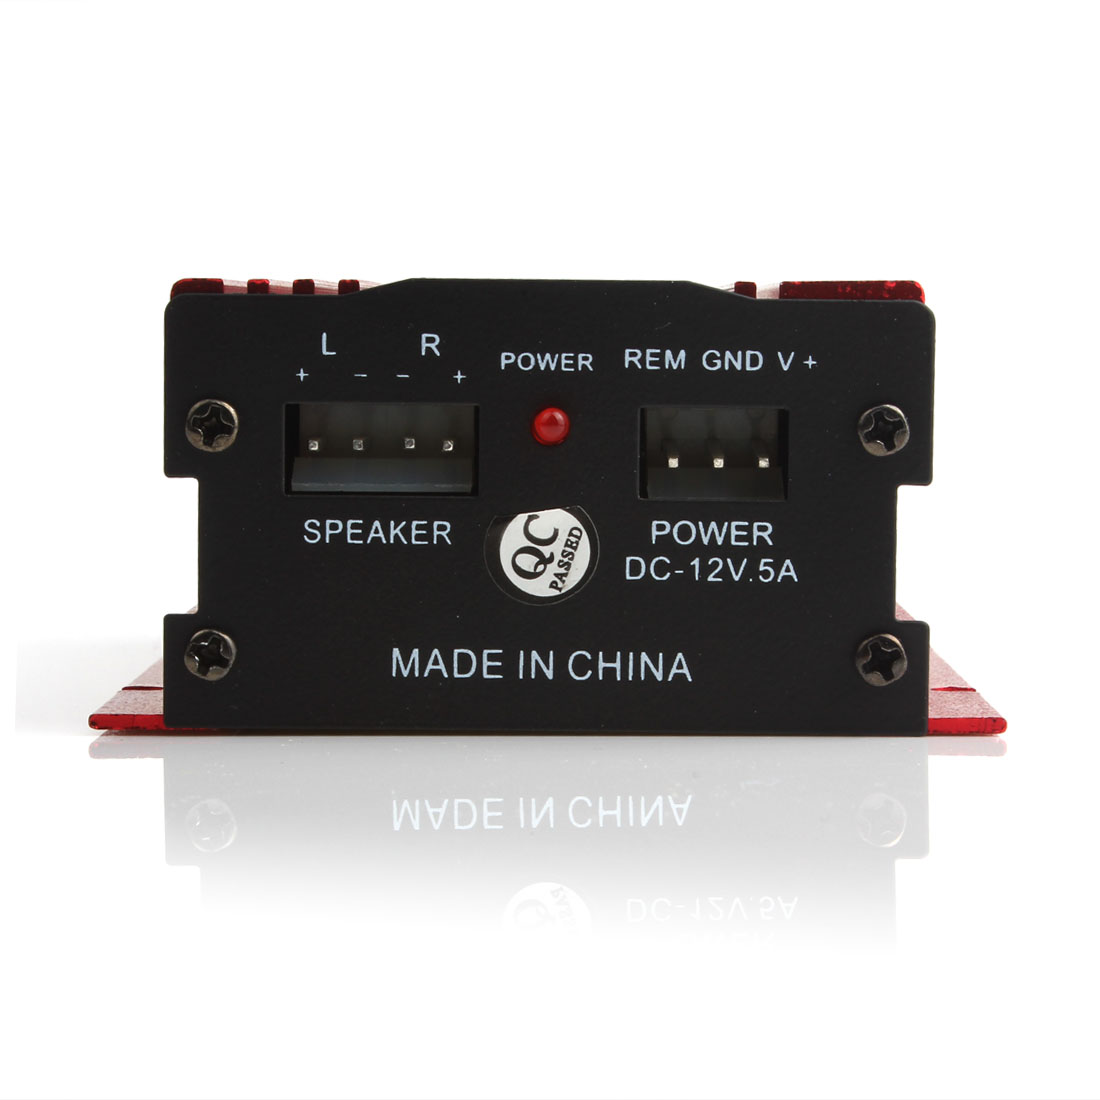 Mini-Hi-Fi-500W-2-Channel-Stereo-Audio-Amplifier-For-Car-Motorcycle-Home-New thumbnail 3